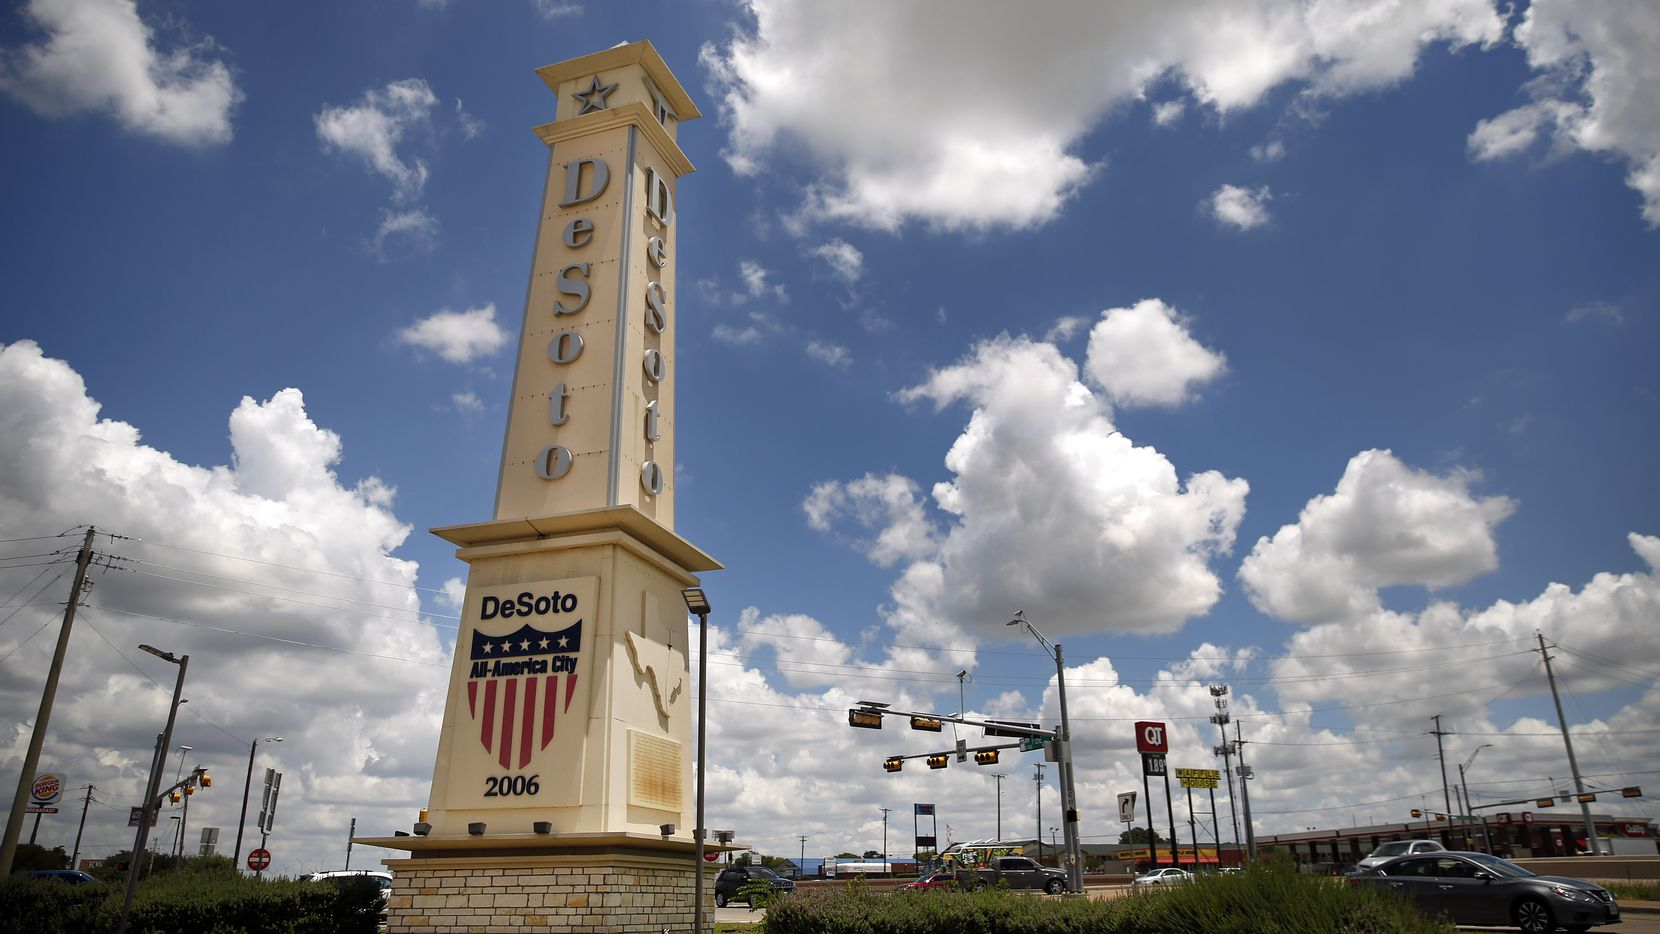 The new beauty store is on East Pleasant Run Road near its intersection with Interstate 35E in DeSoto, where a large obelisk greets people to the city.